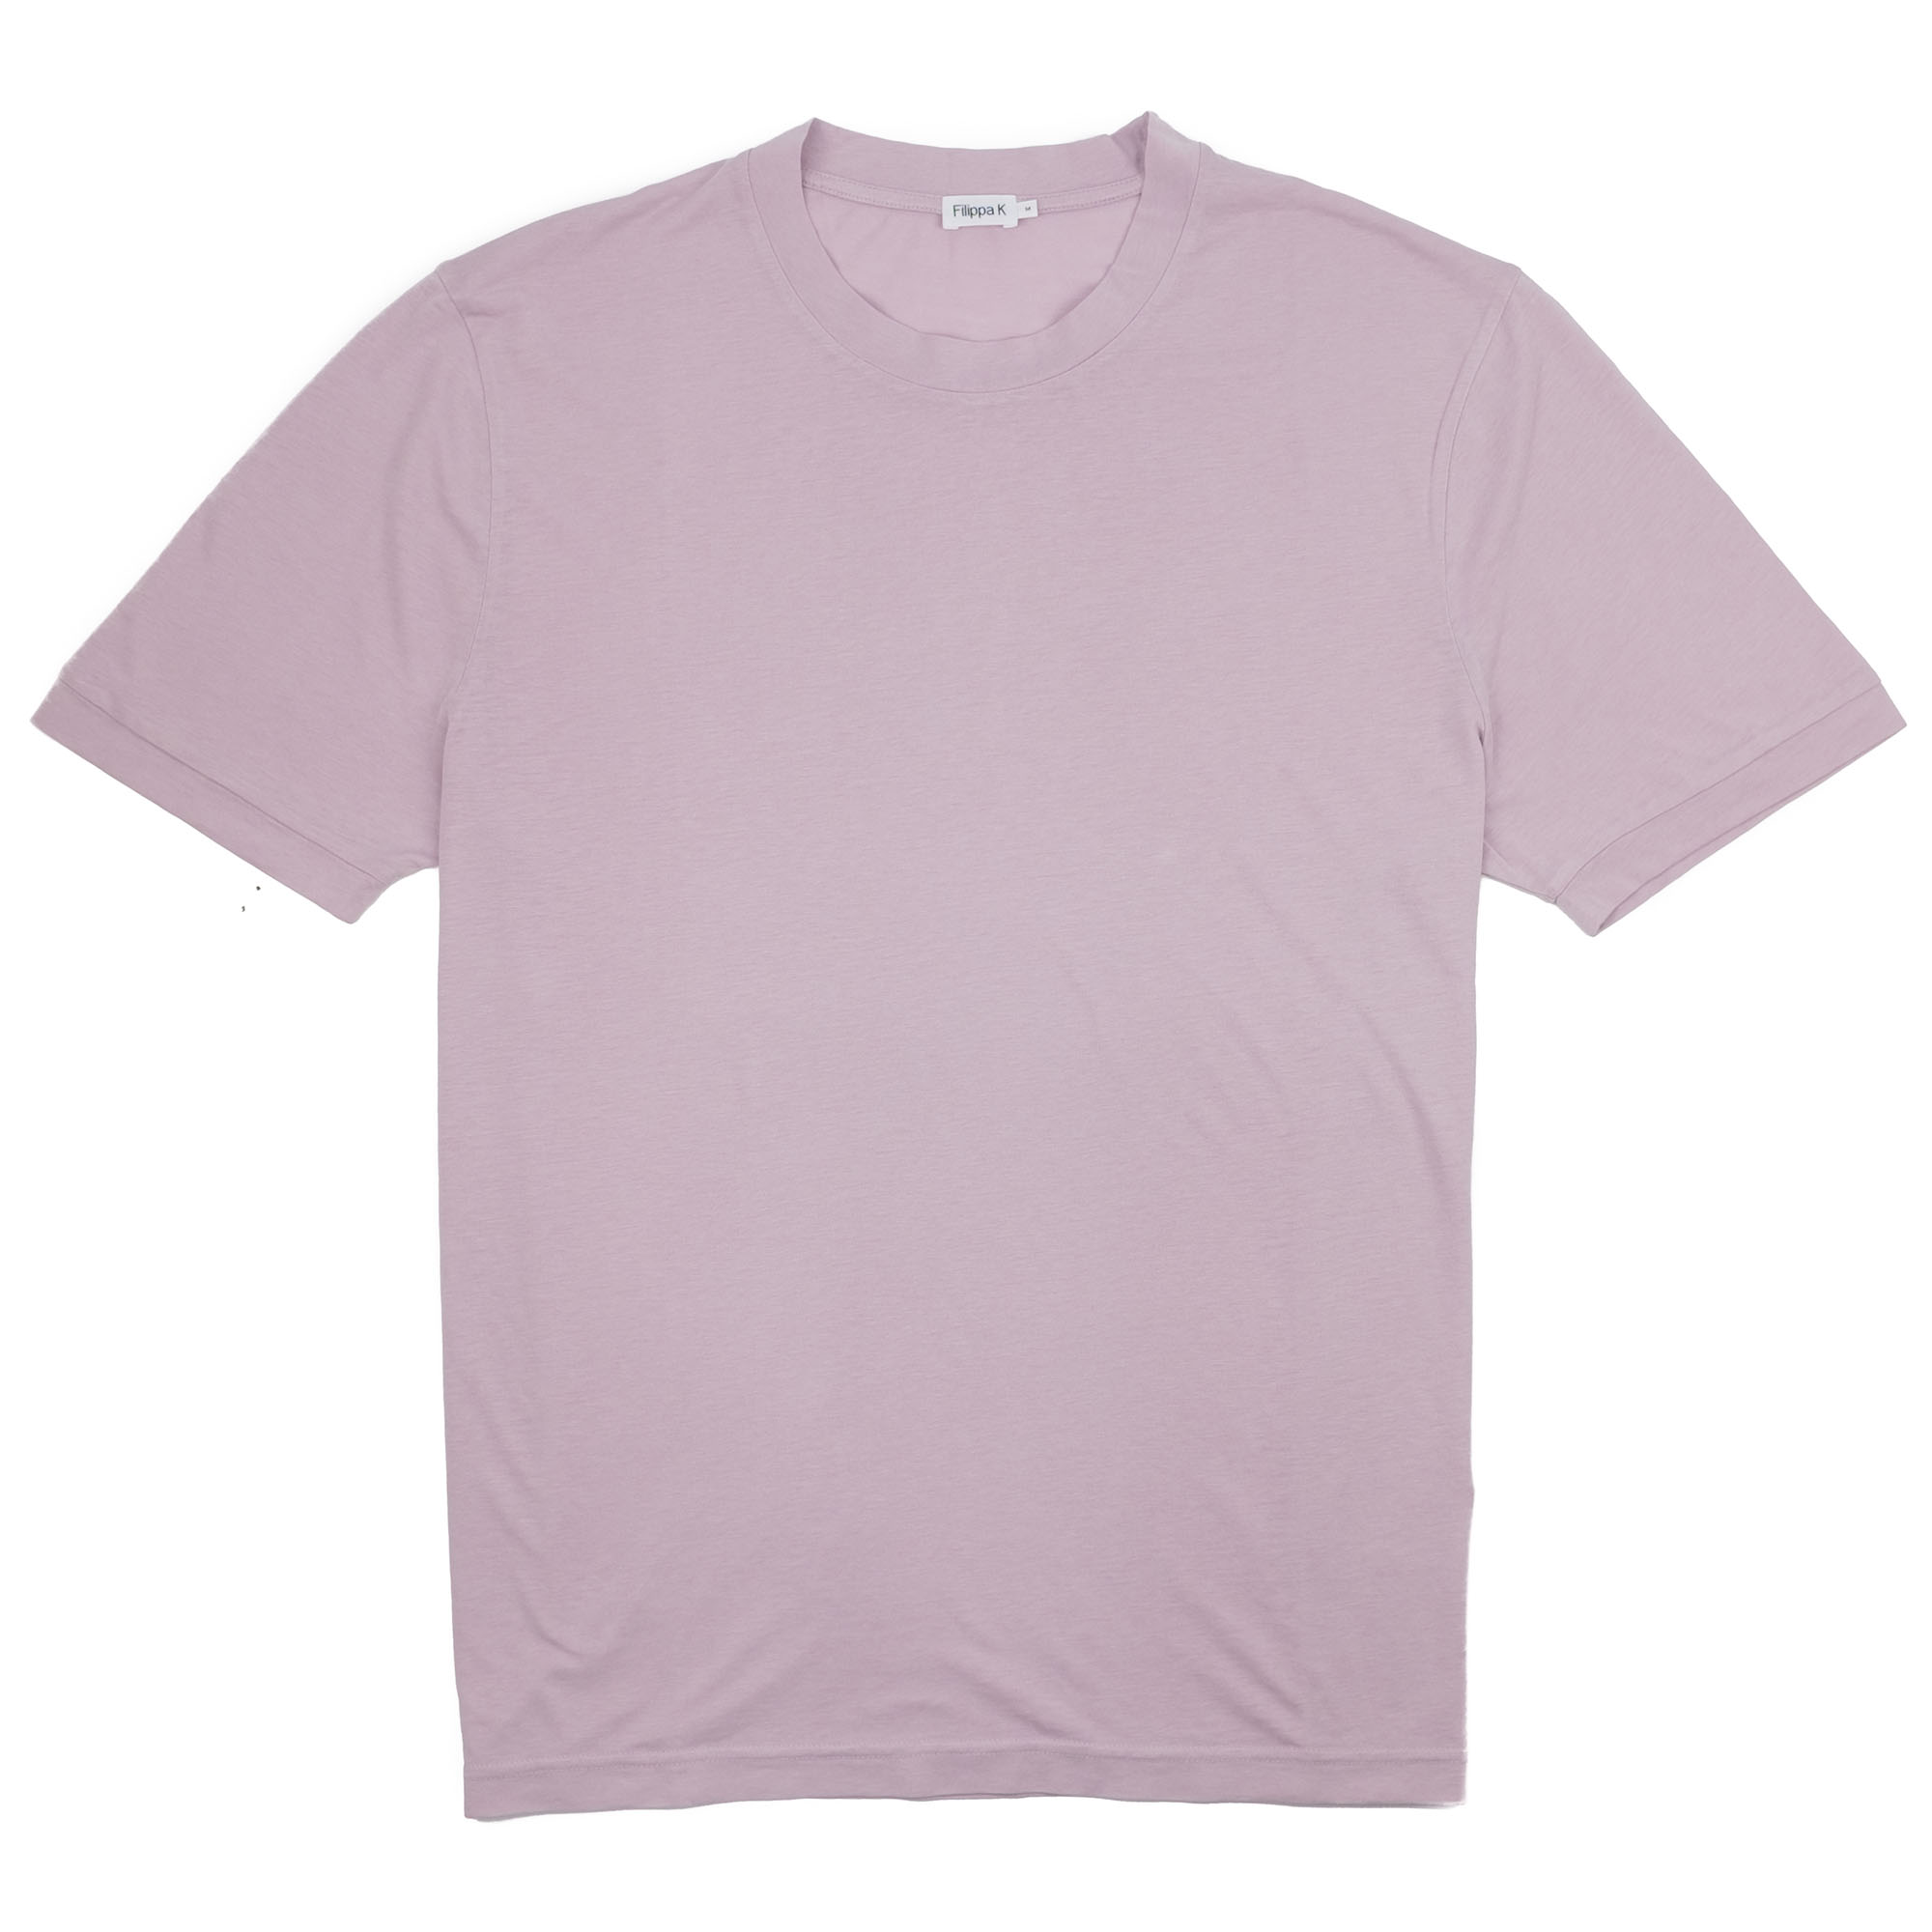 Filippa K Tencel Cotton Tee - Frosty Pink